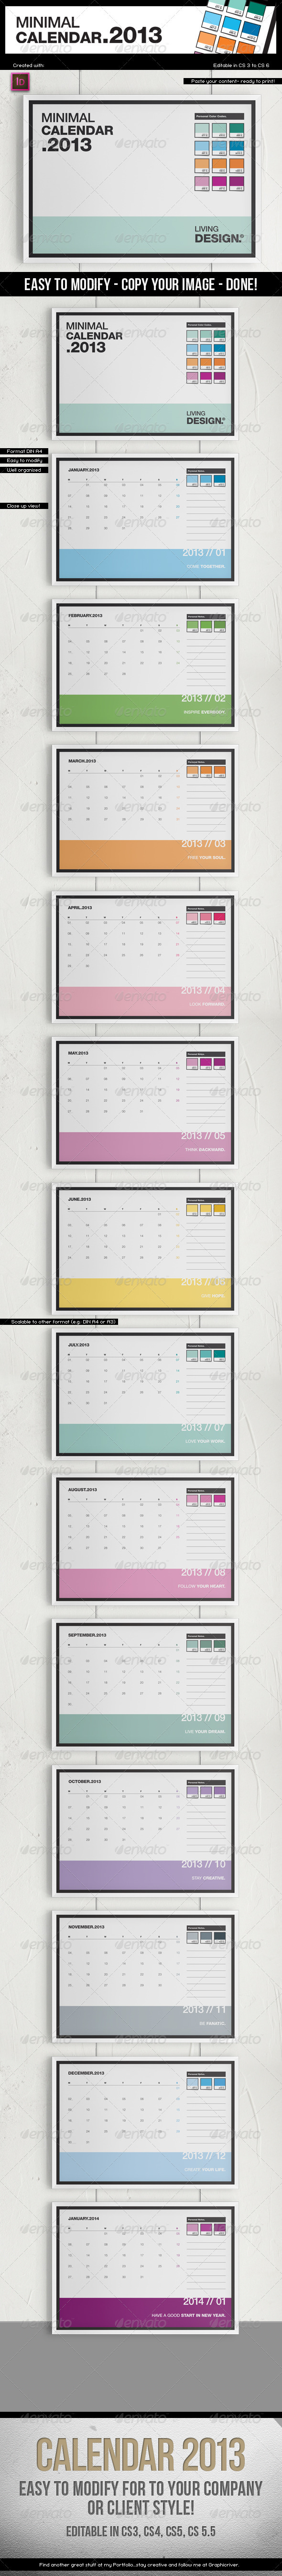 Calendar 2013 // A4 Template // Pantone ® Style - Calendars Stationery